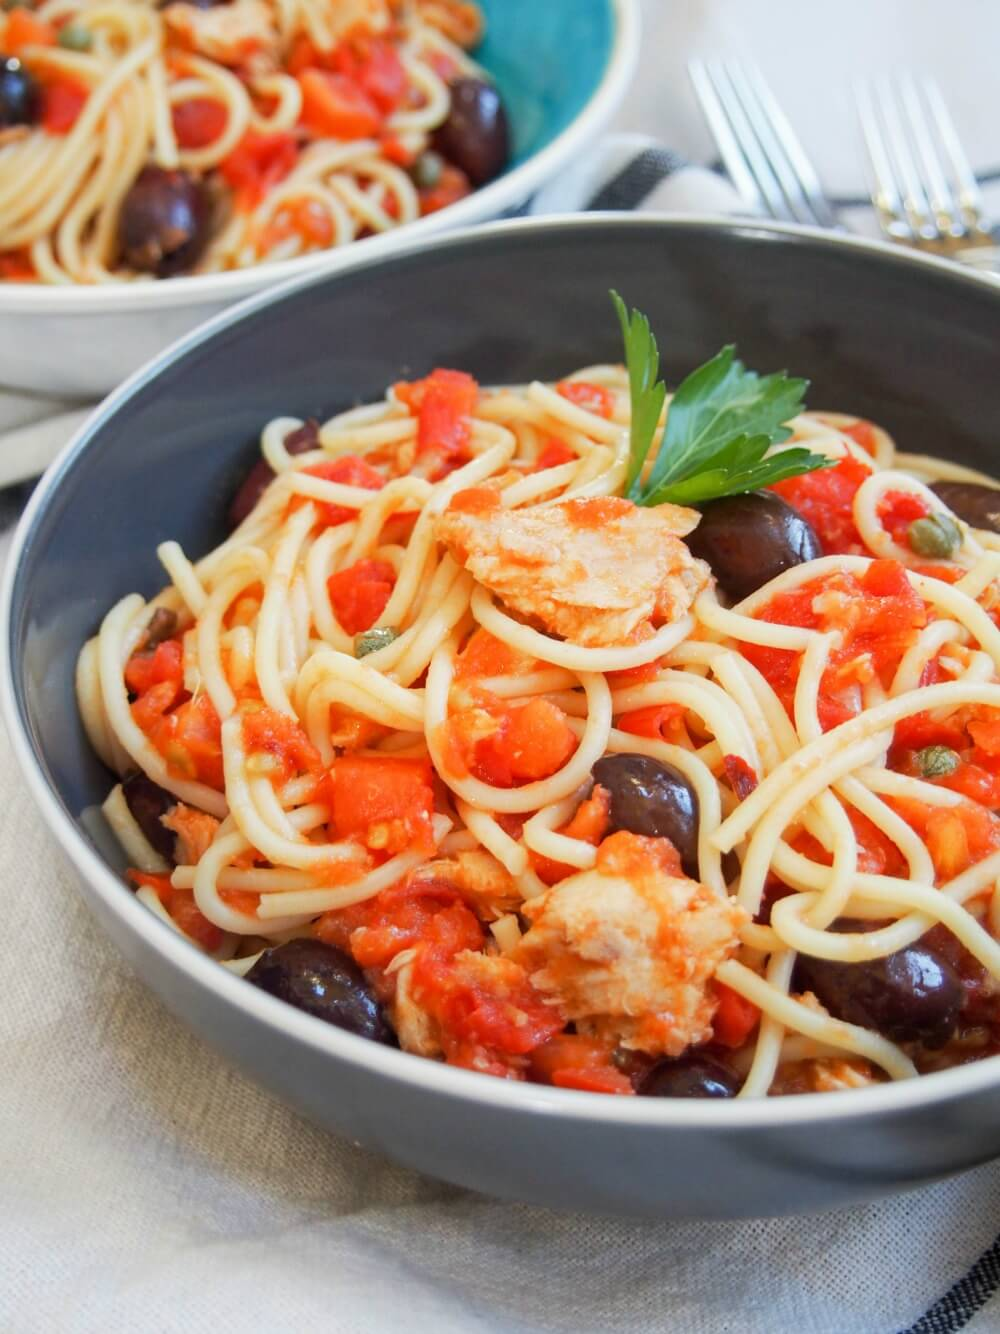 Pasta puttanesca with tomatoes, tuna, anchovies capers and olives